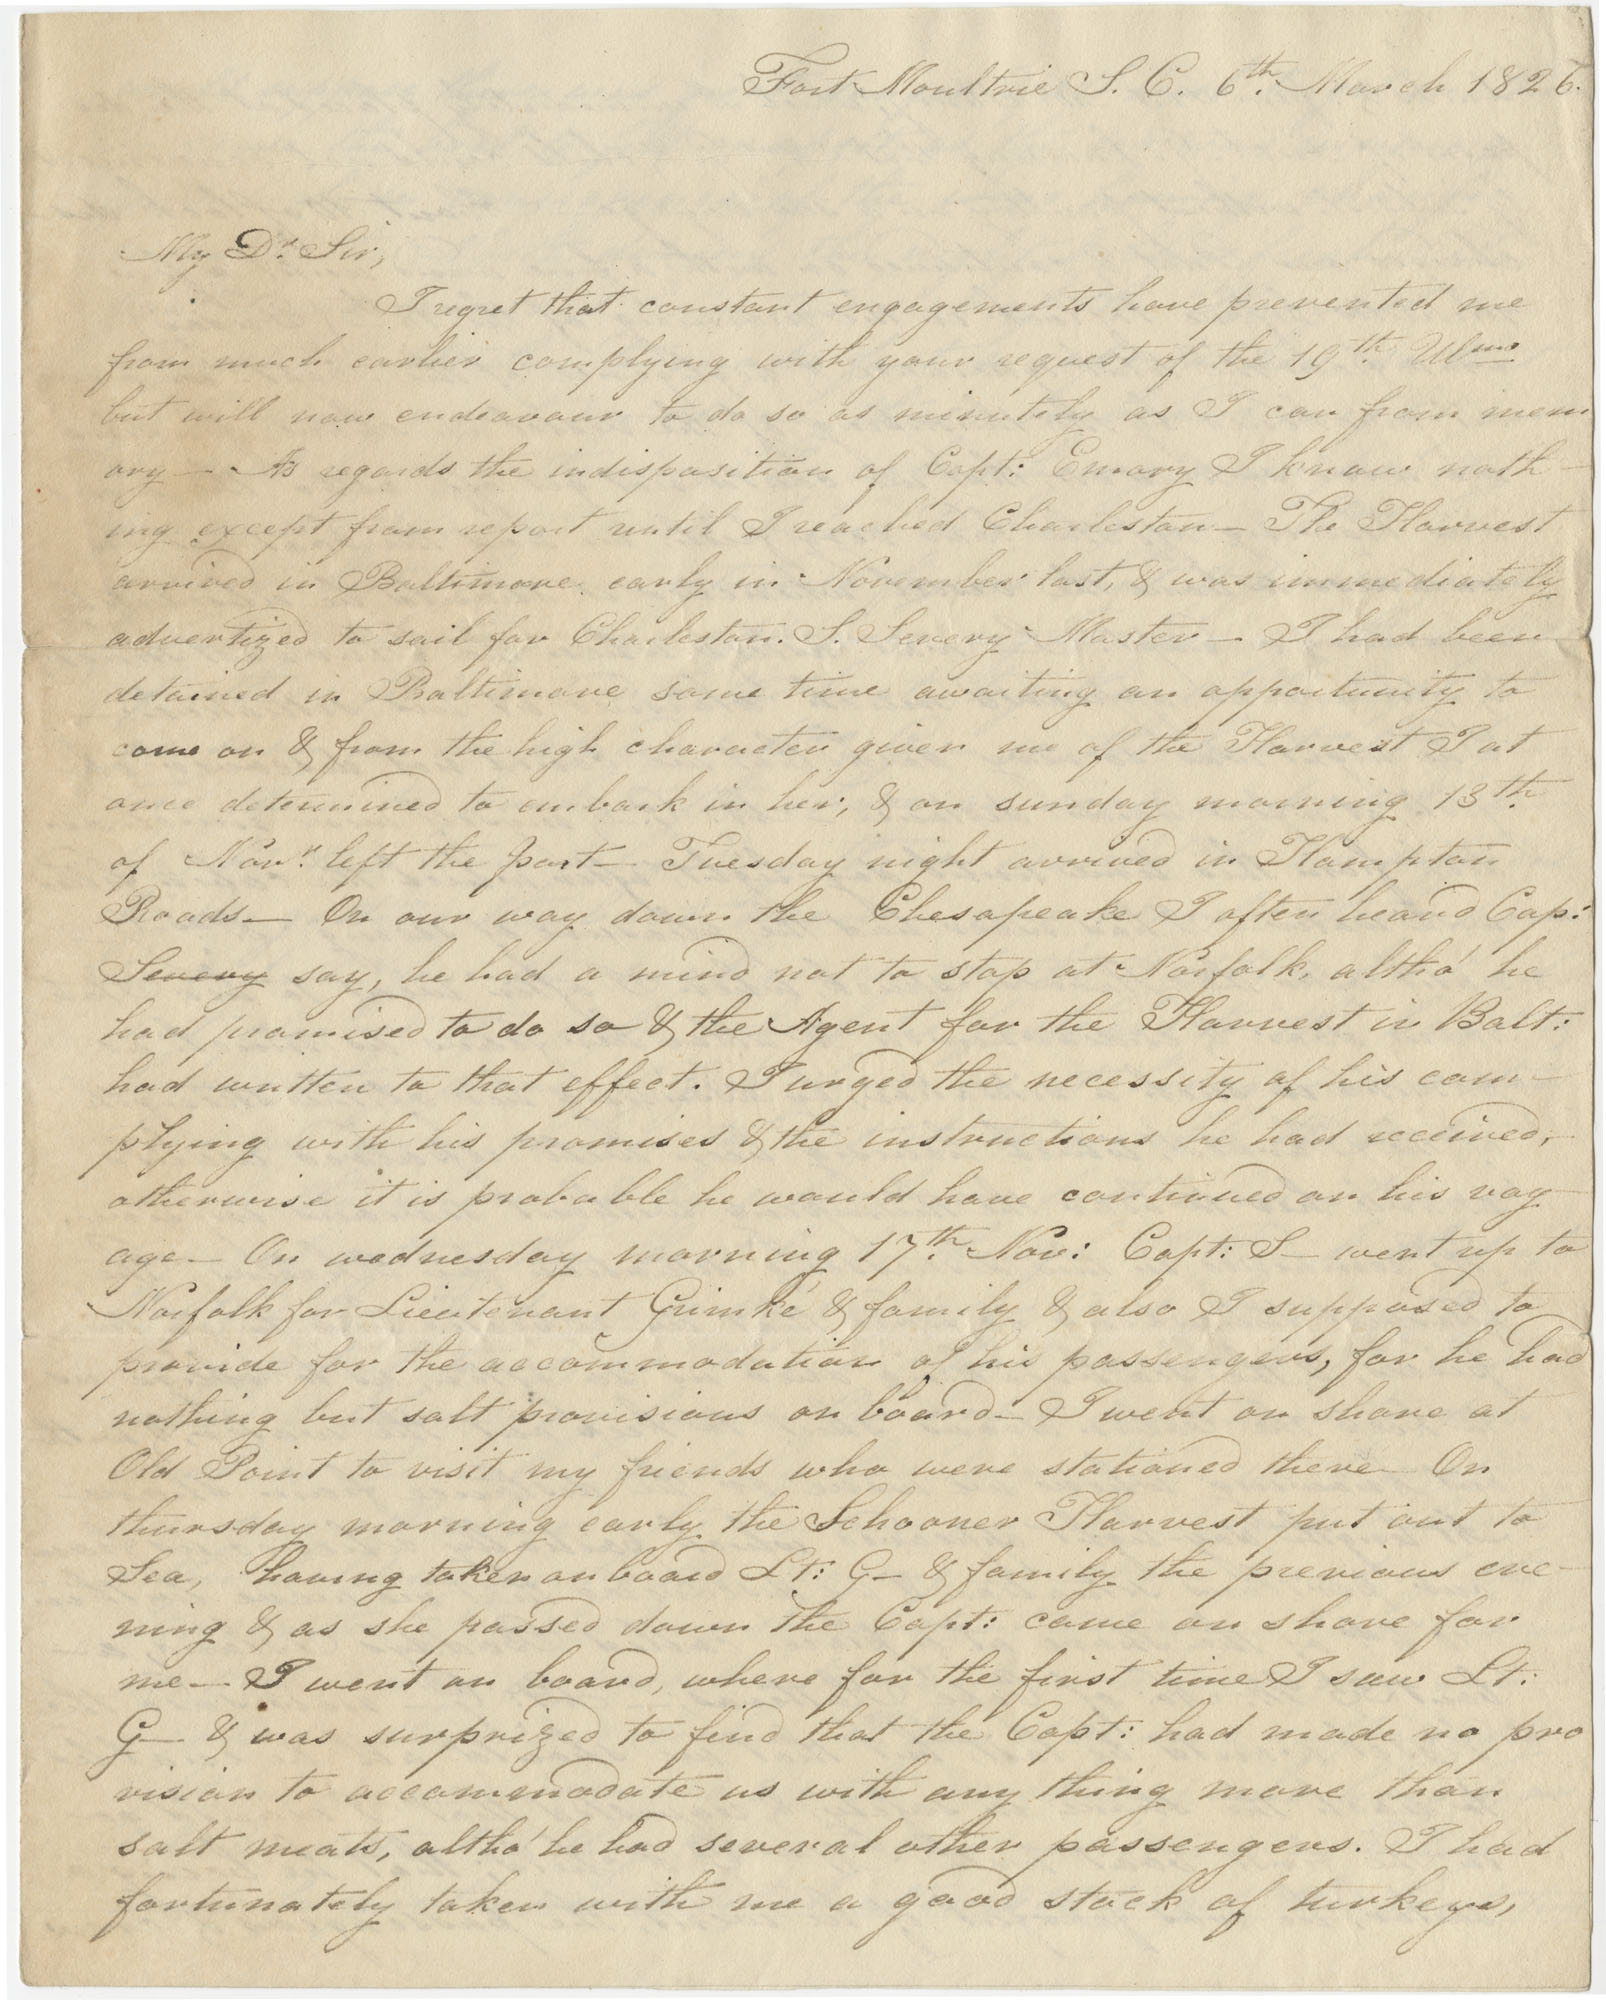 Letter from Benjamin King giving an acoount of the wreck of the